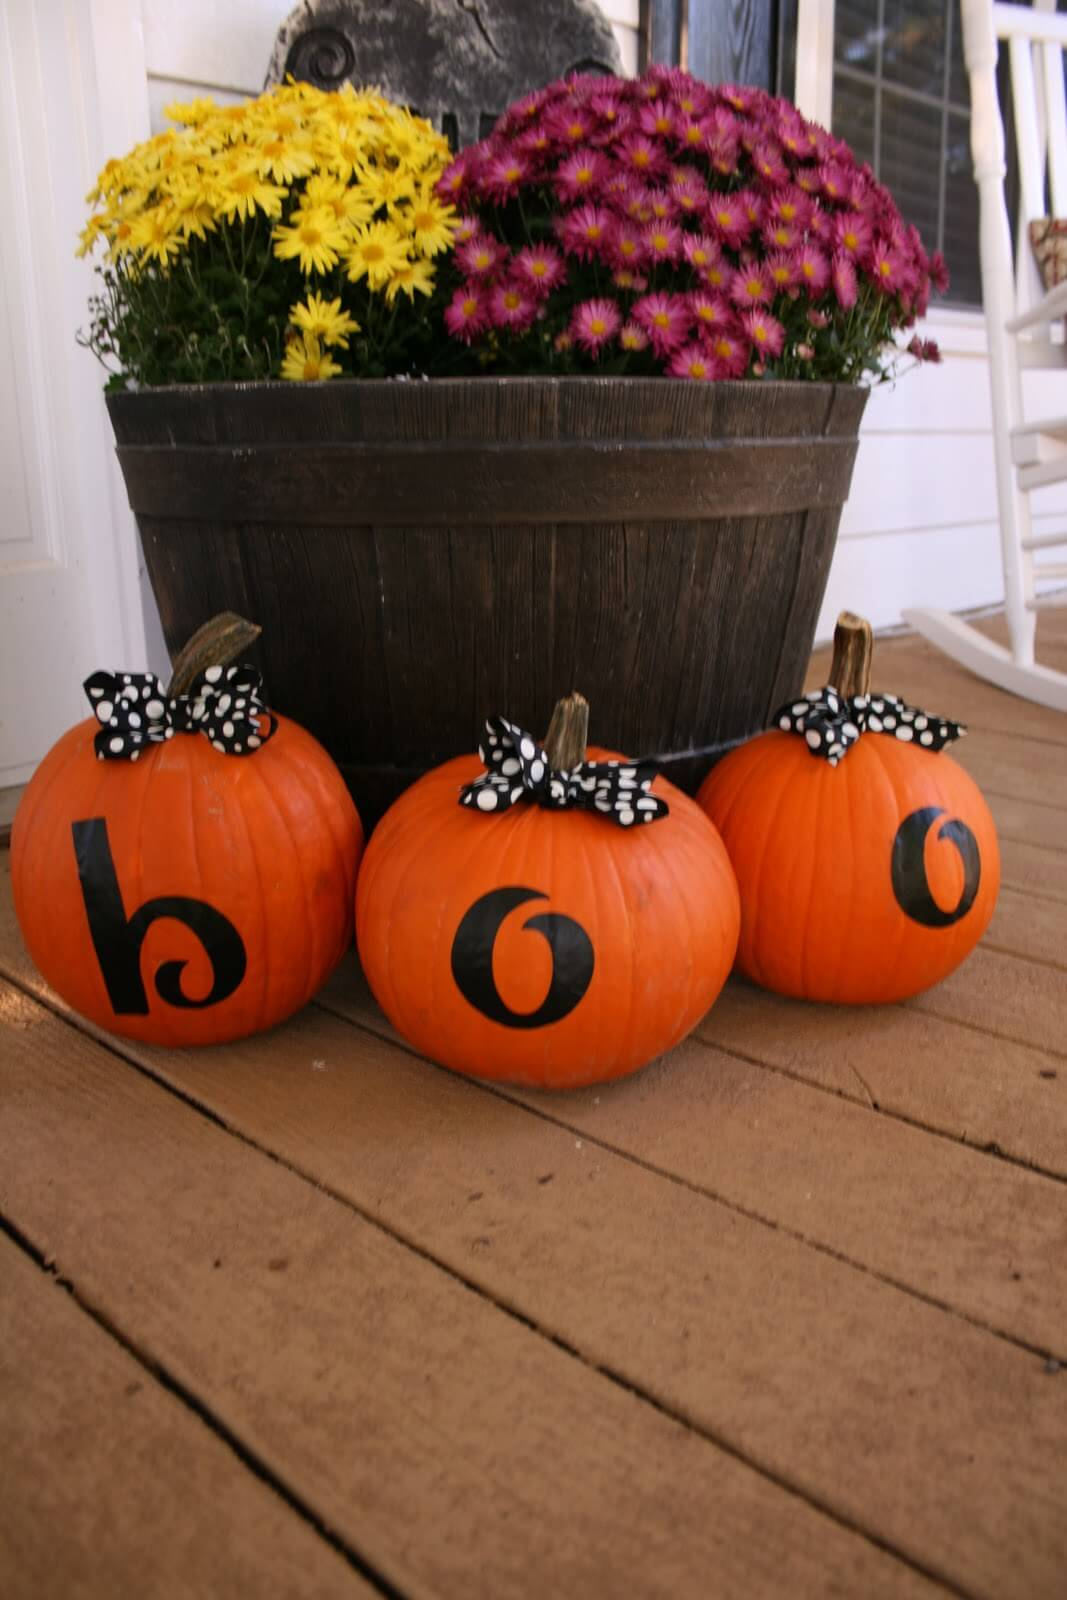 Boo Doesn't Have to be Scary | Fall Porch Decoration Ideas | Porch decor on a budget